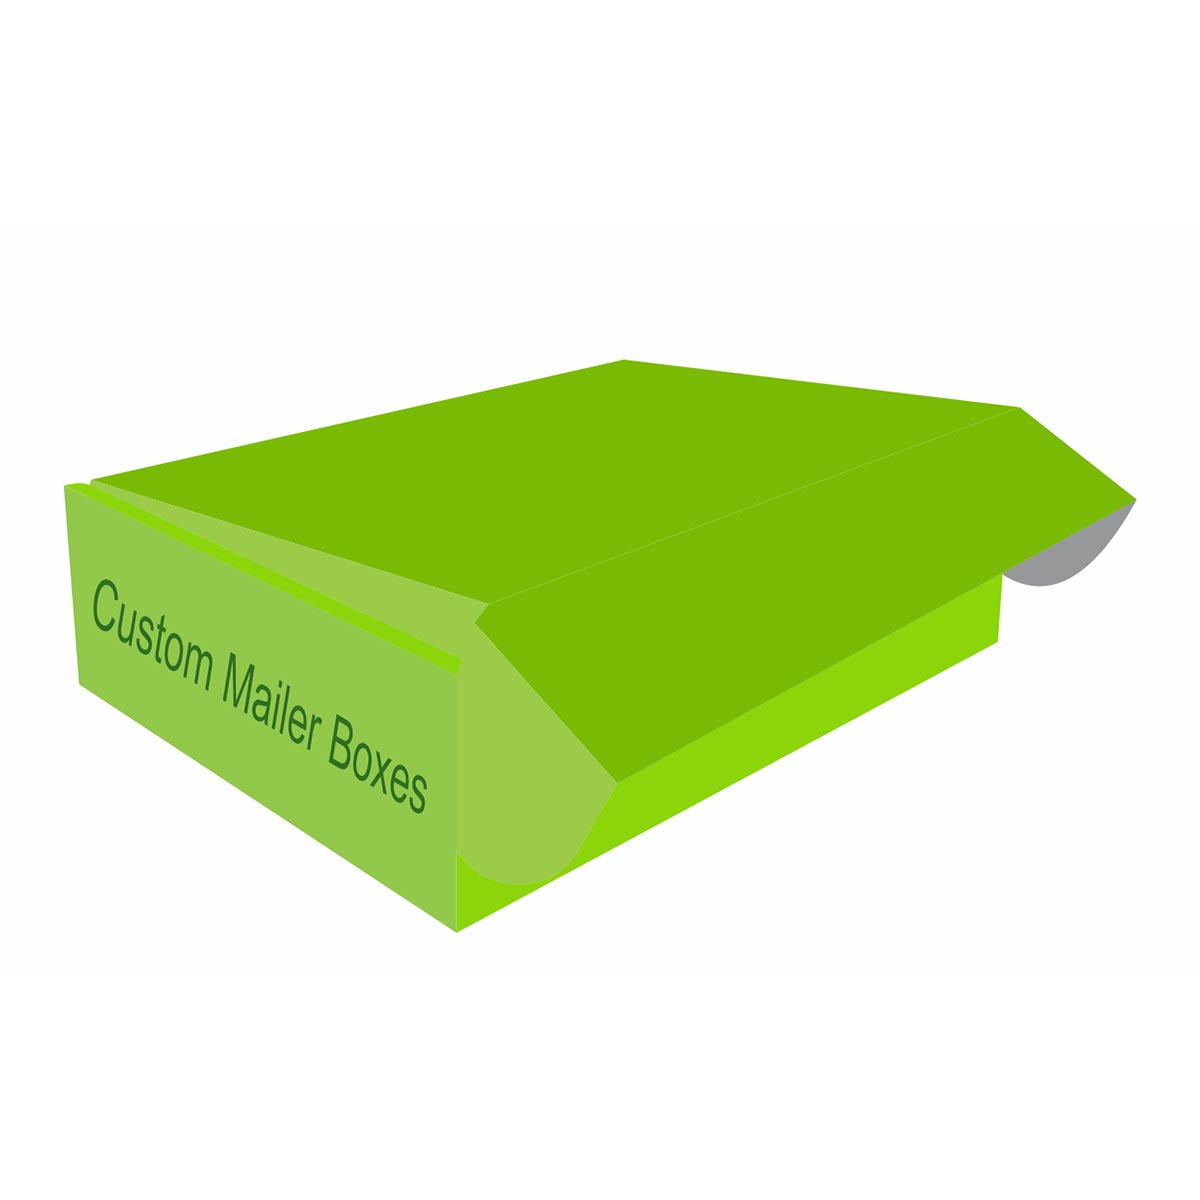 uline mailer boxes